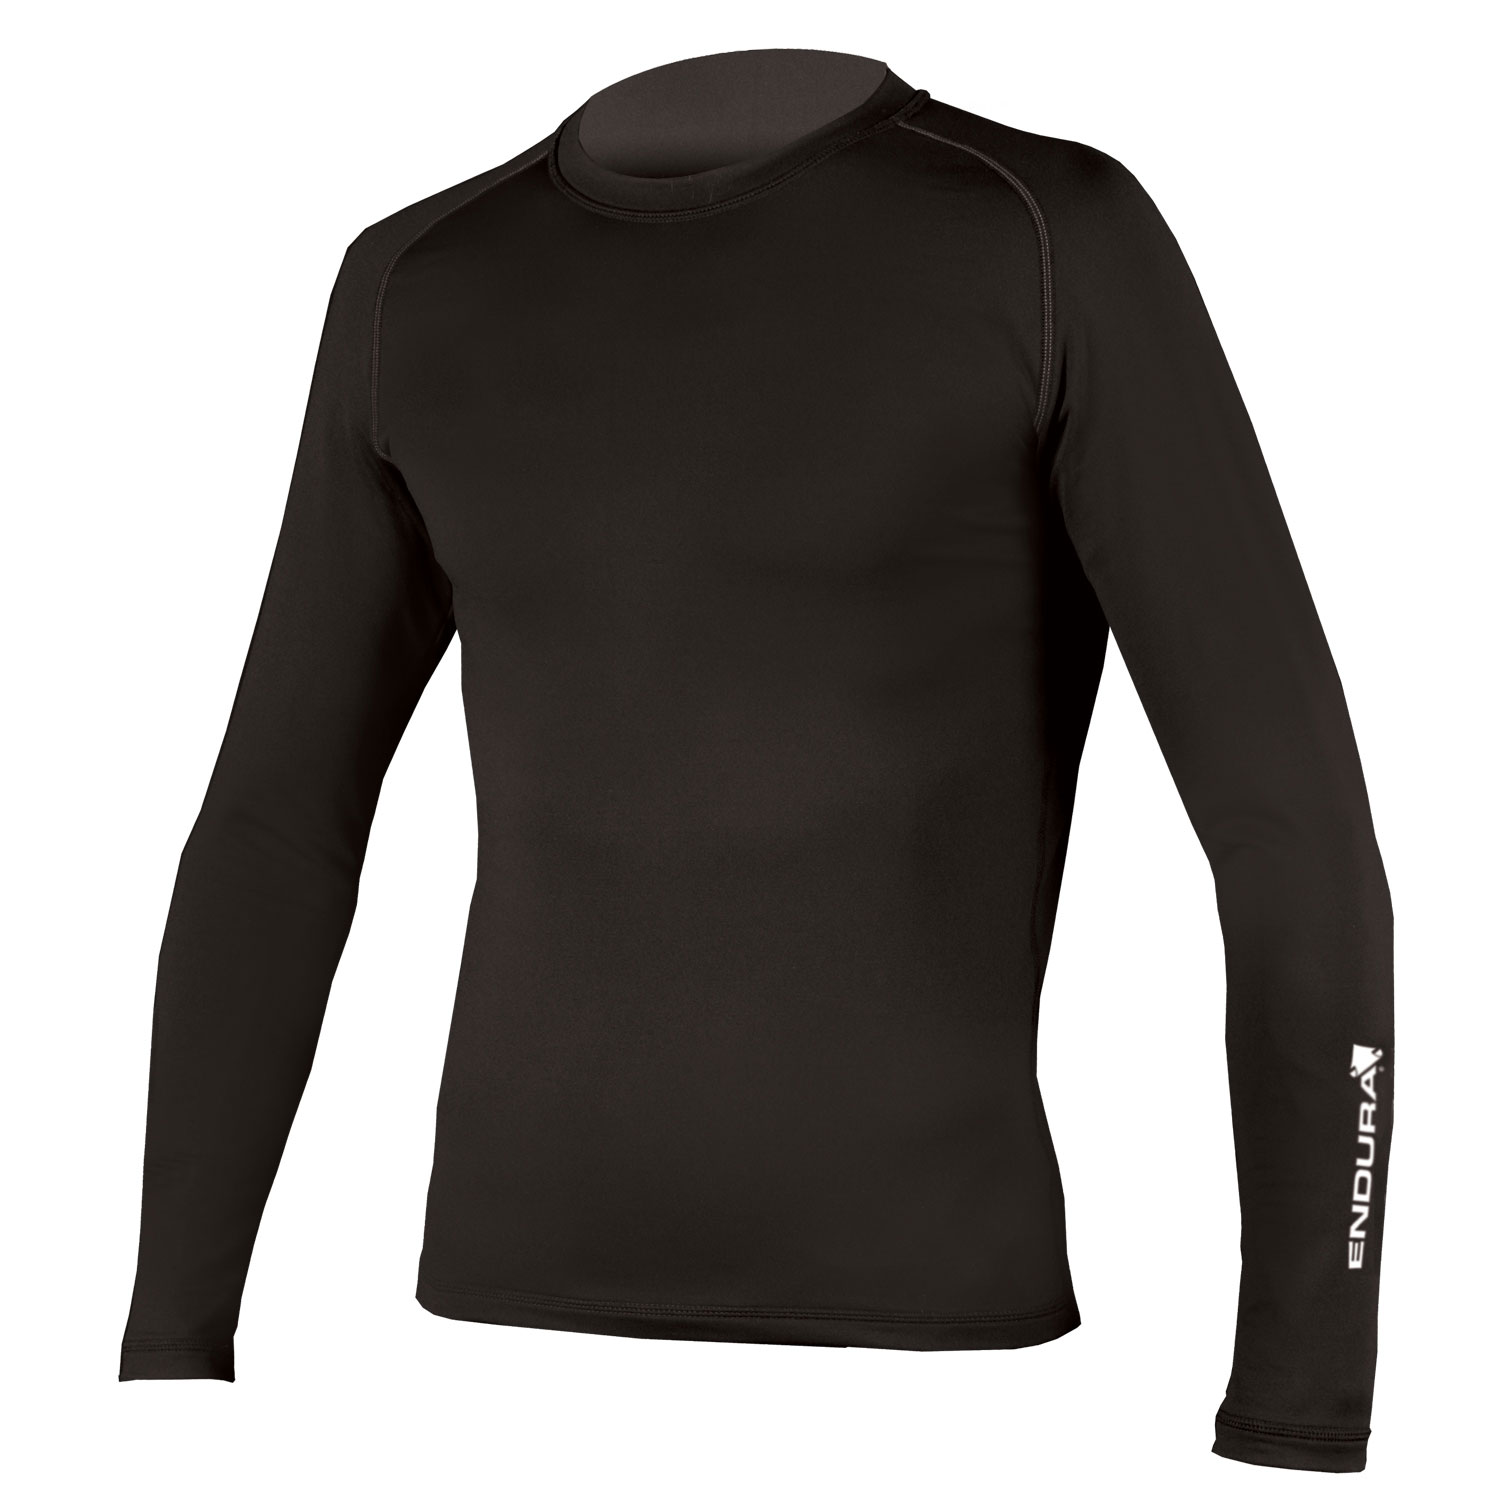 Frontline Baselayer front